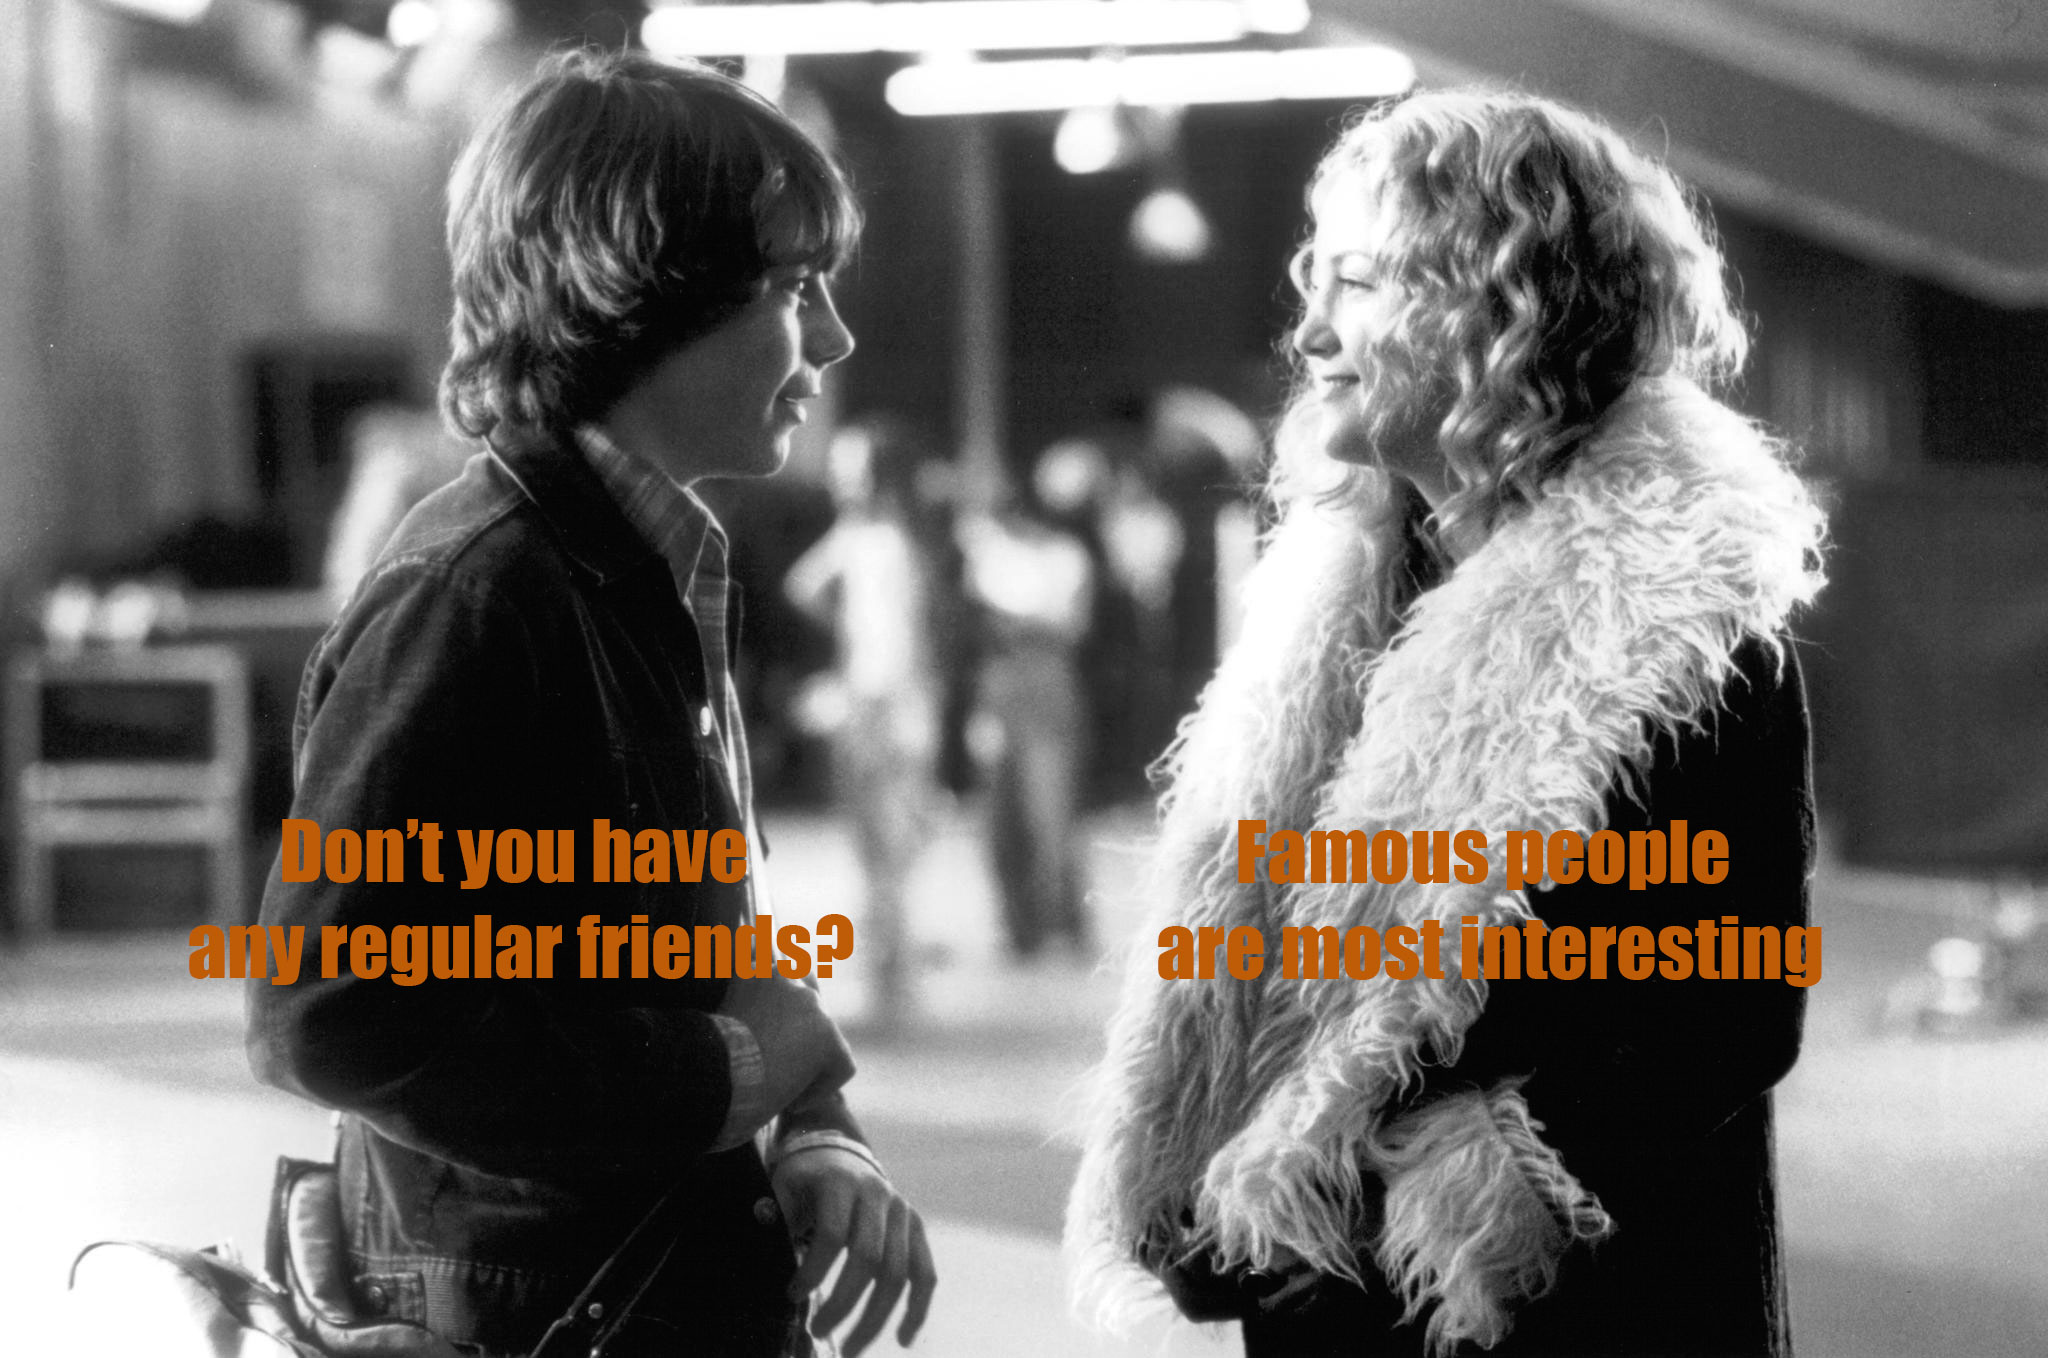 Una de las interesantes conversaciones entre William Miller y Penny Lane en 'Almost Famous'.